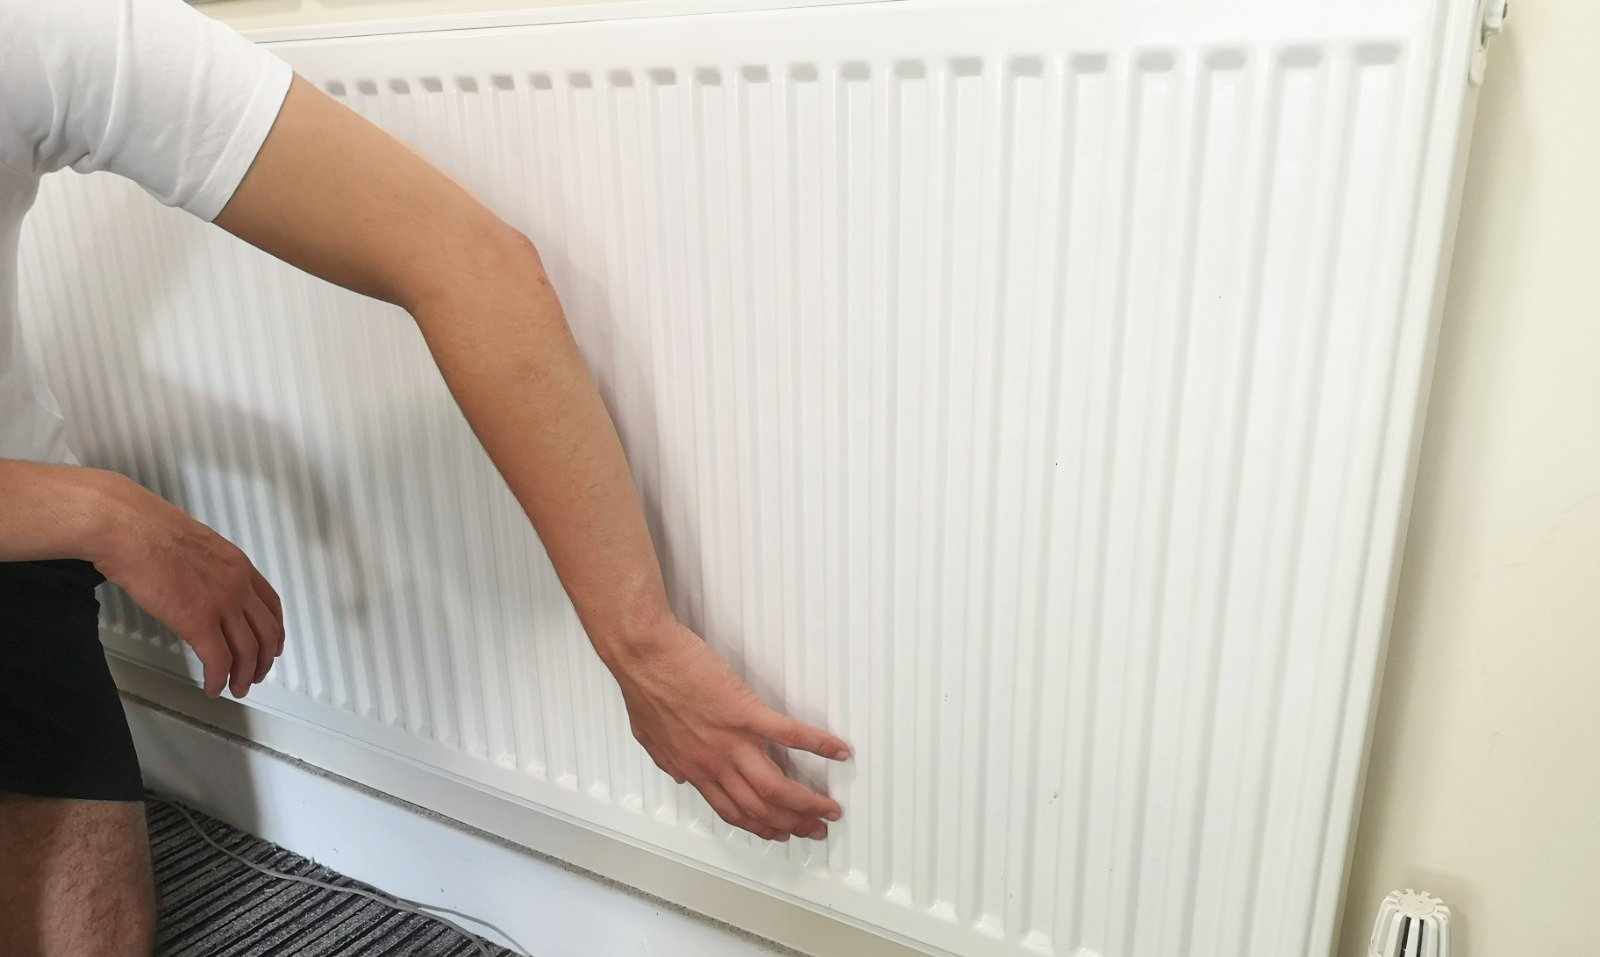 Touch your radiator gently to find the cold patches